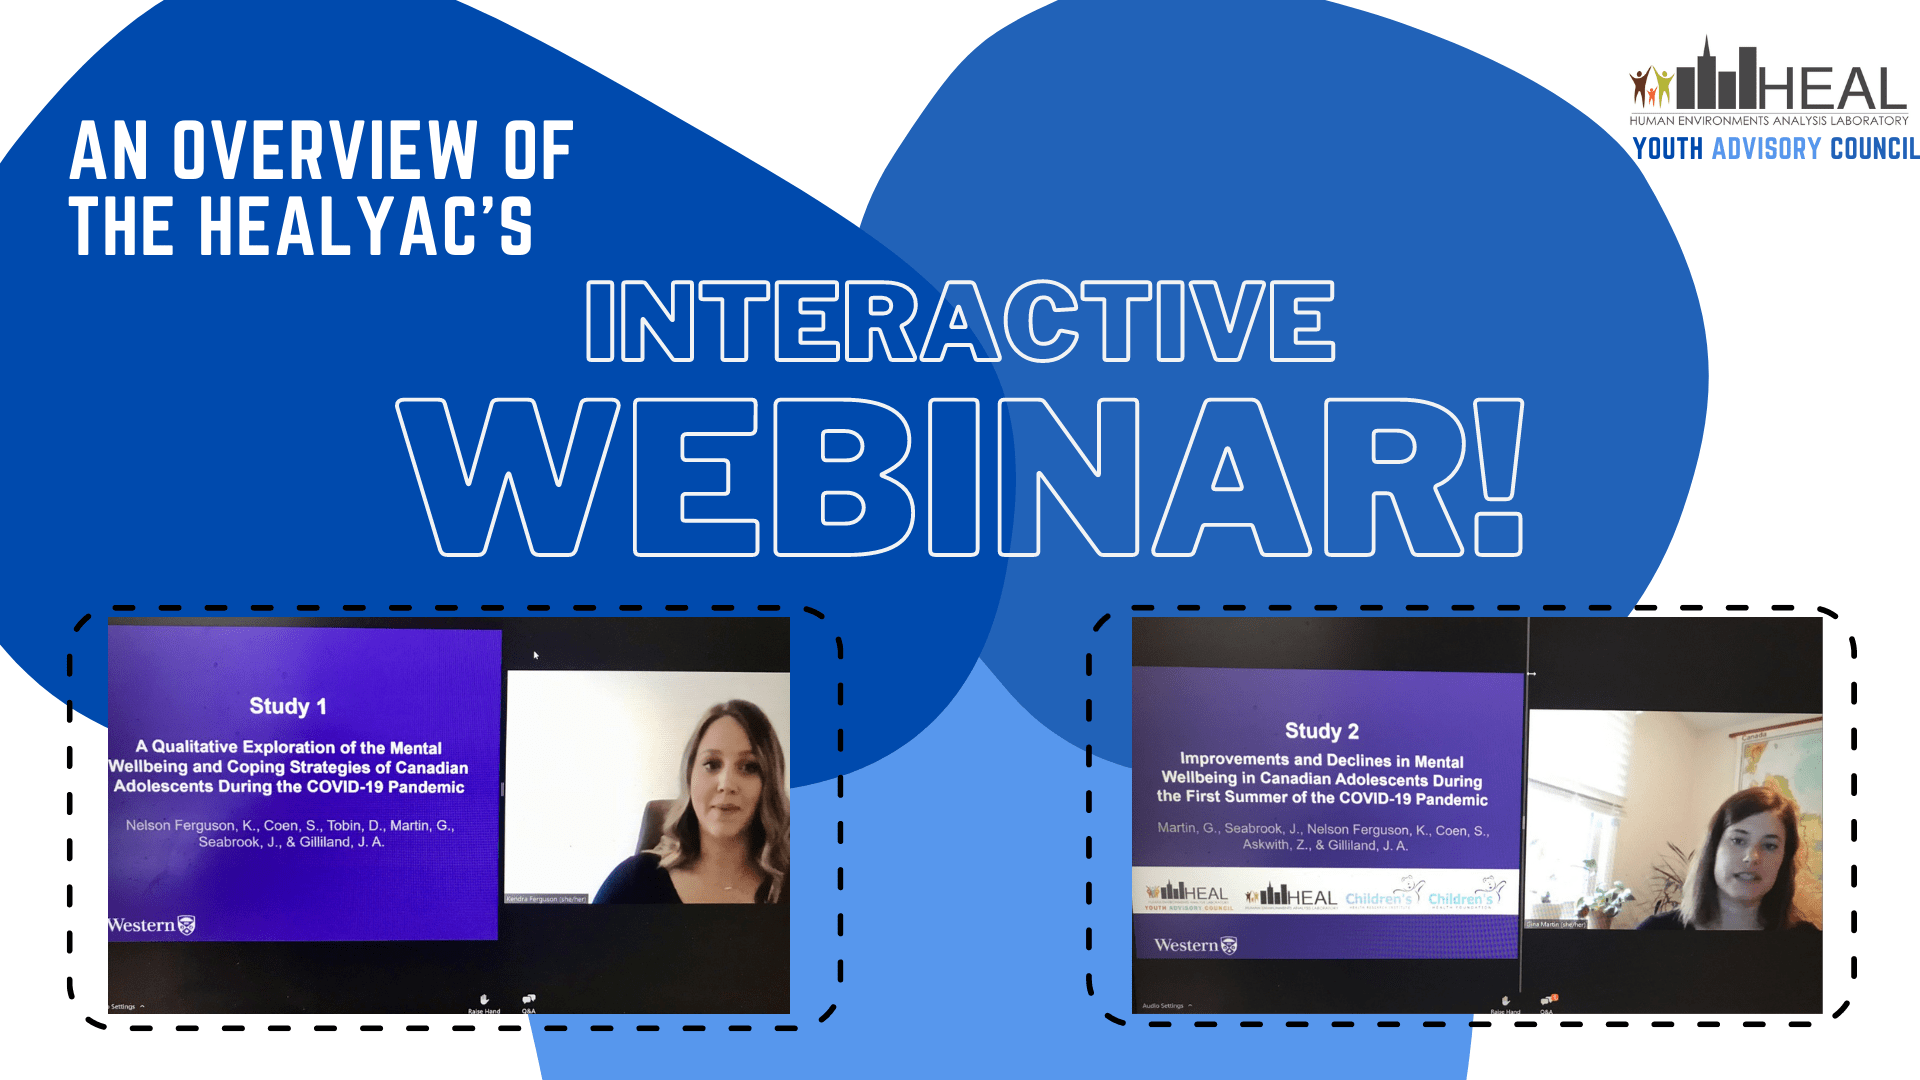 An Overview of the HEALYAC's Interactive Webinar!